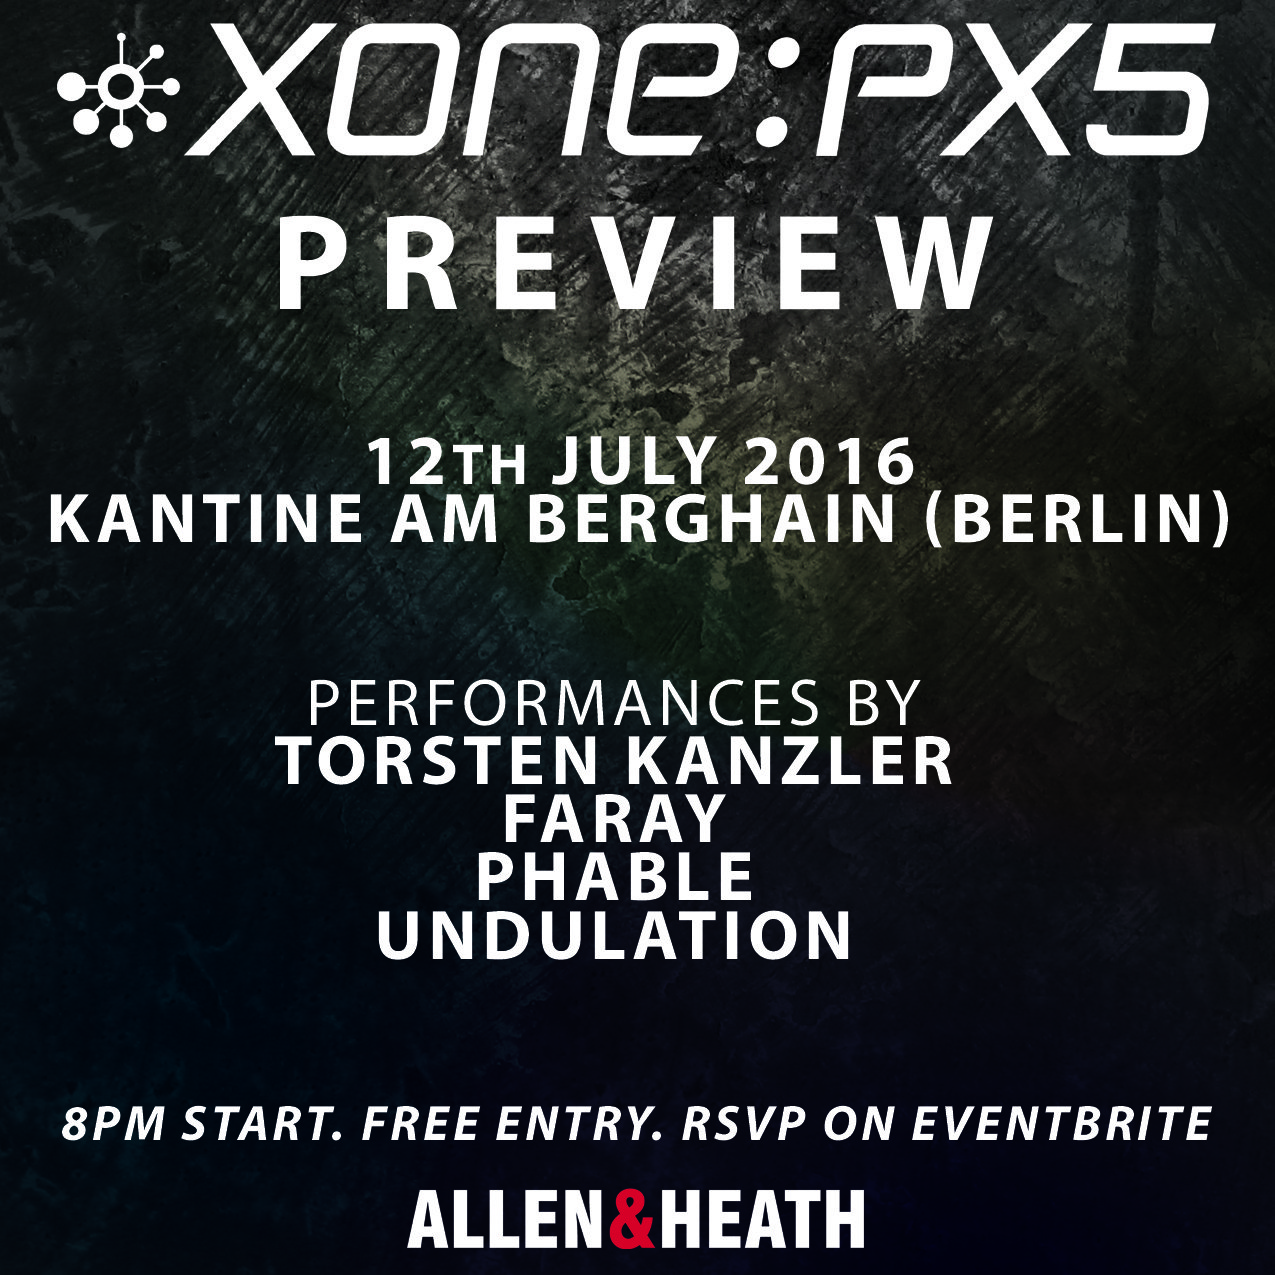 PX5 GERMANY NEW EVENT